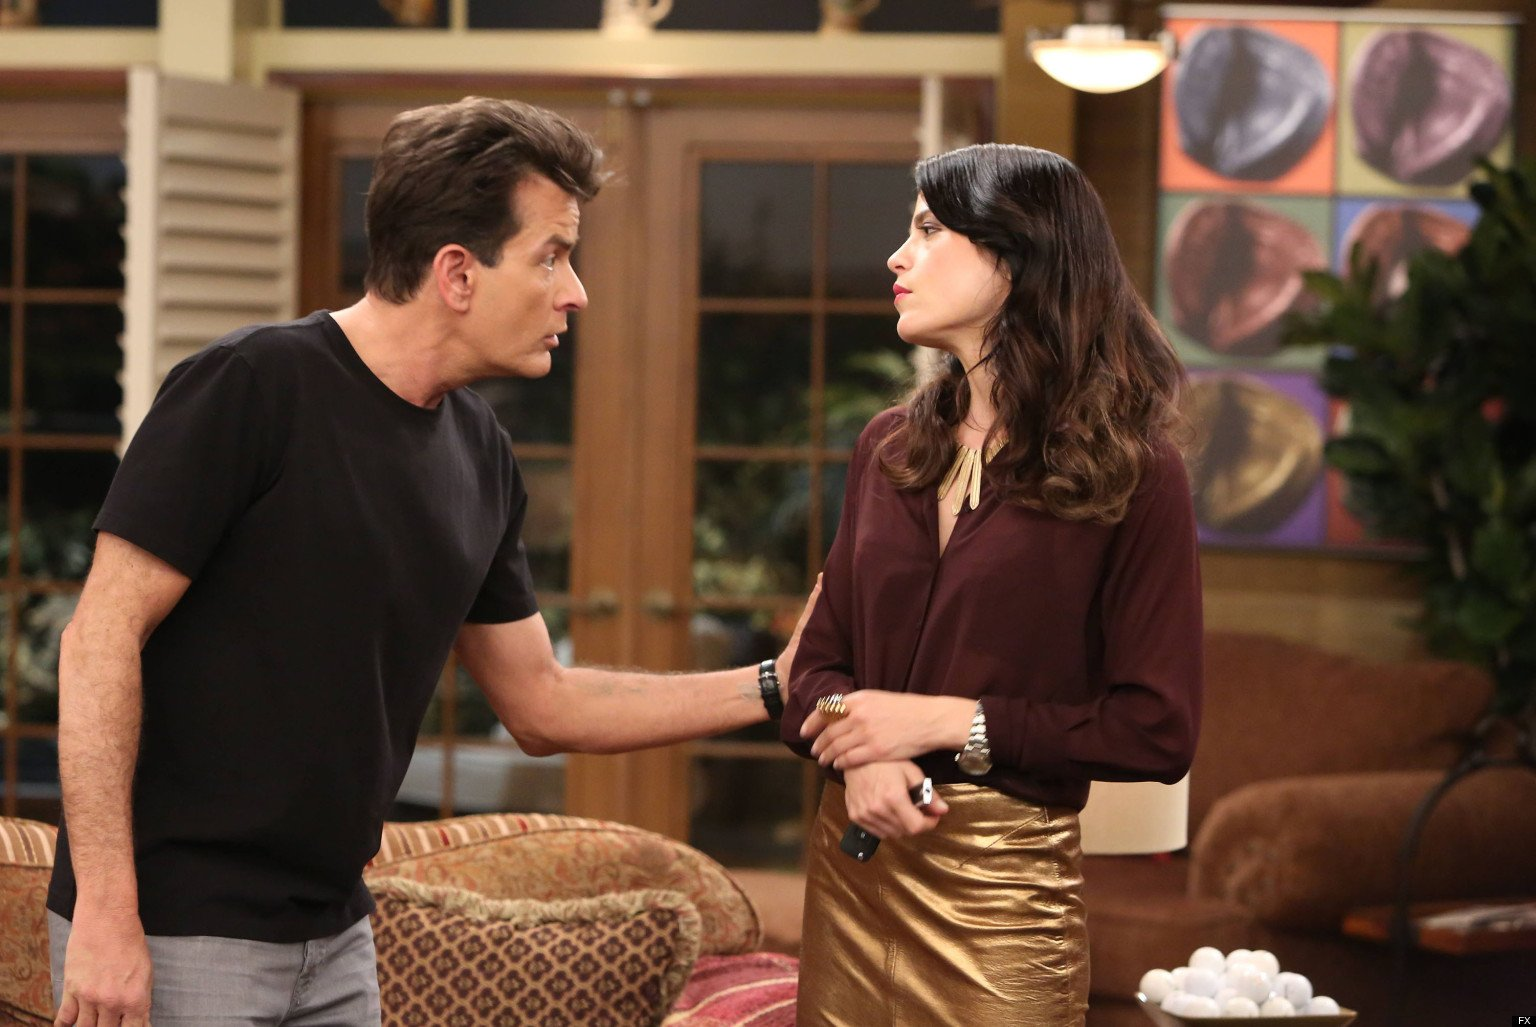 Charlie Sheen holds Selma Blair's arm in Anger Management